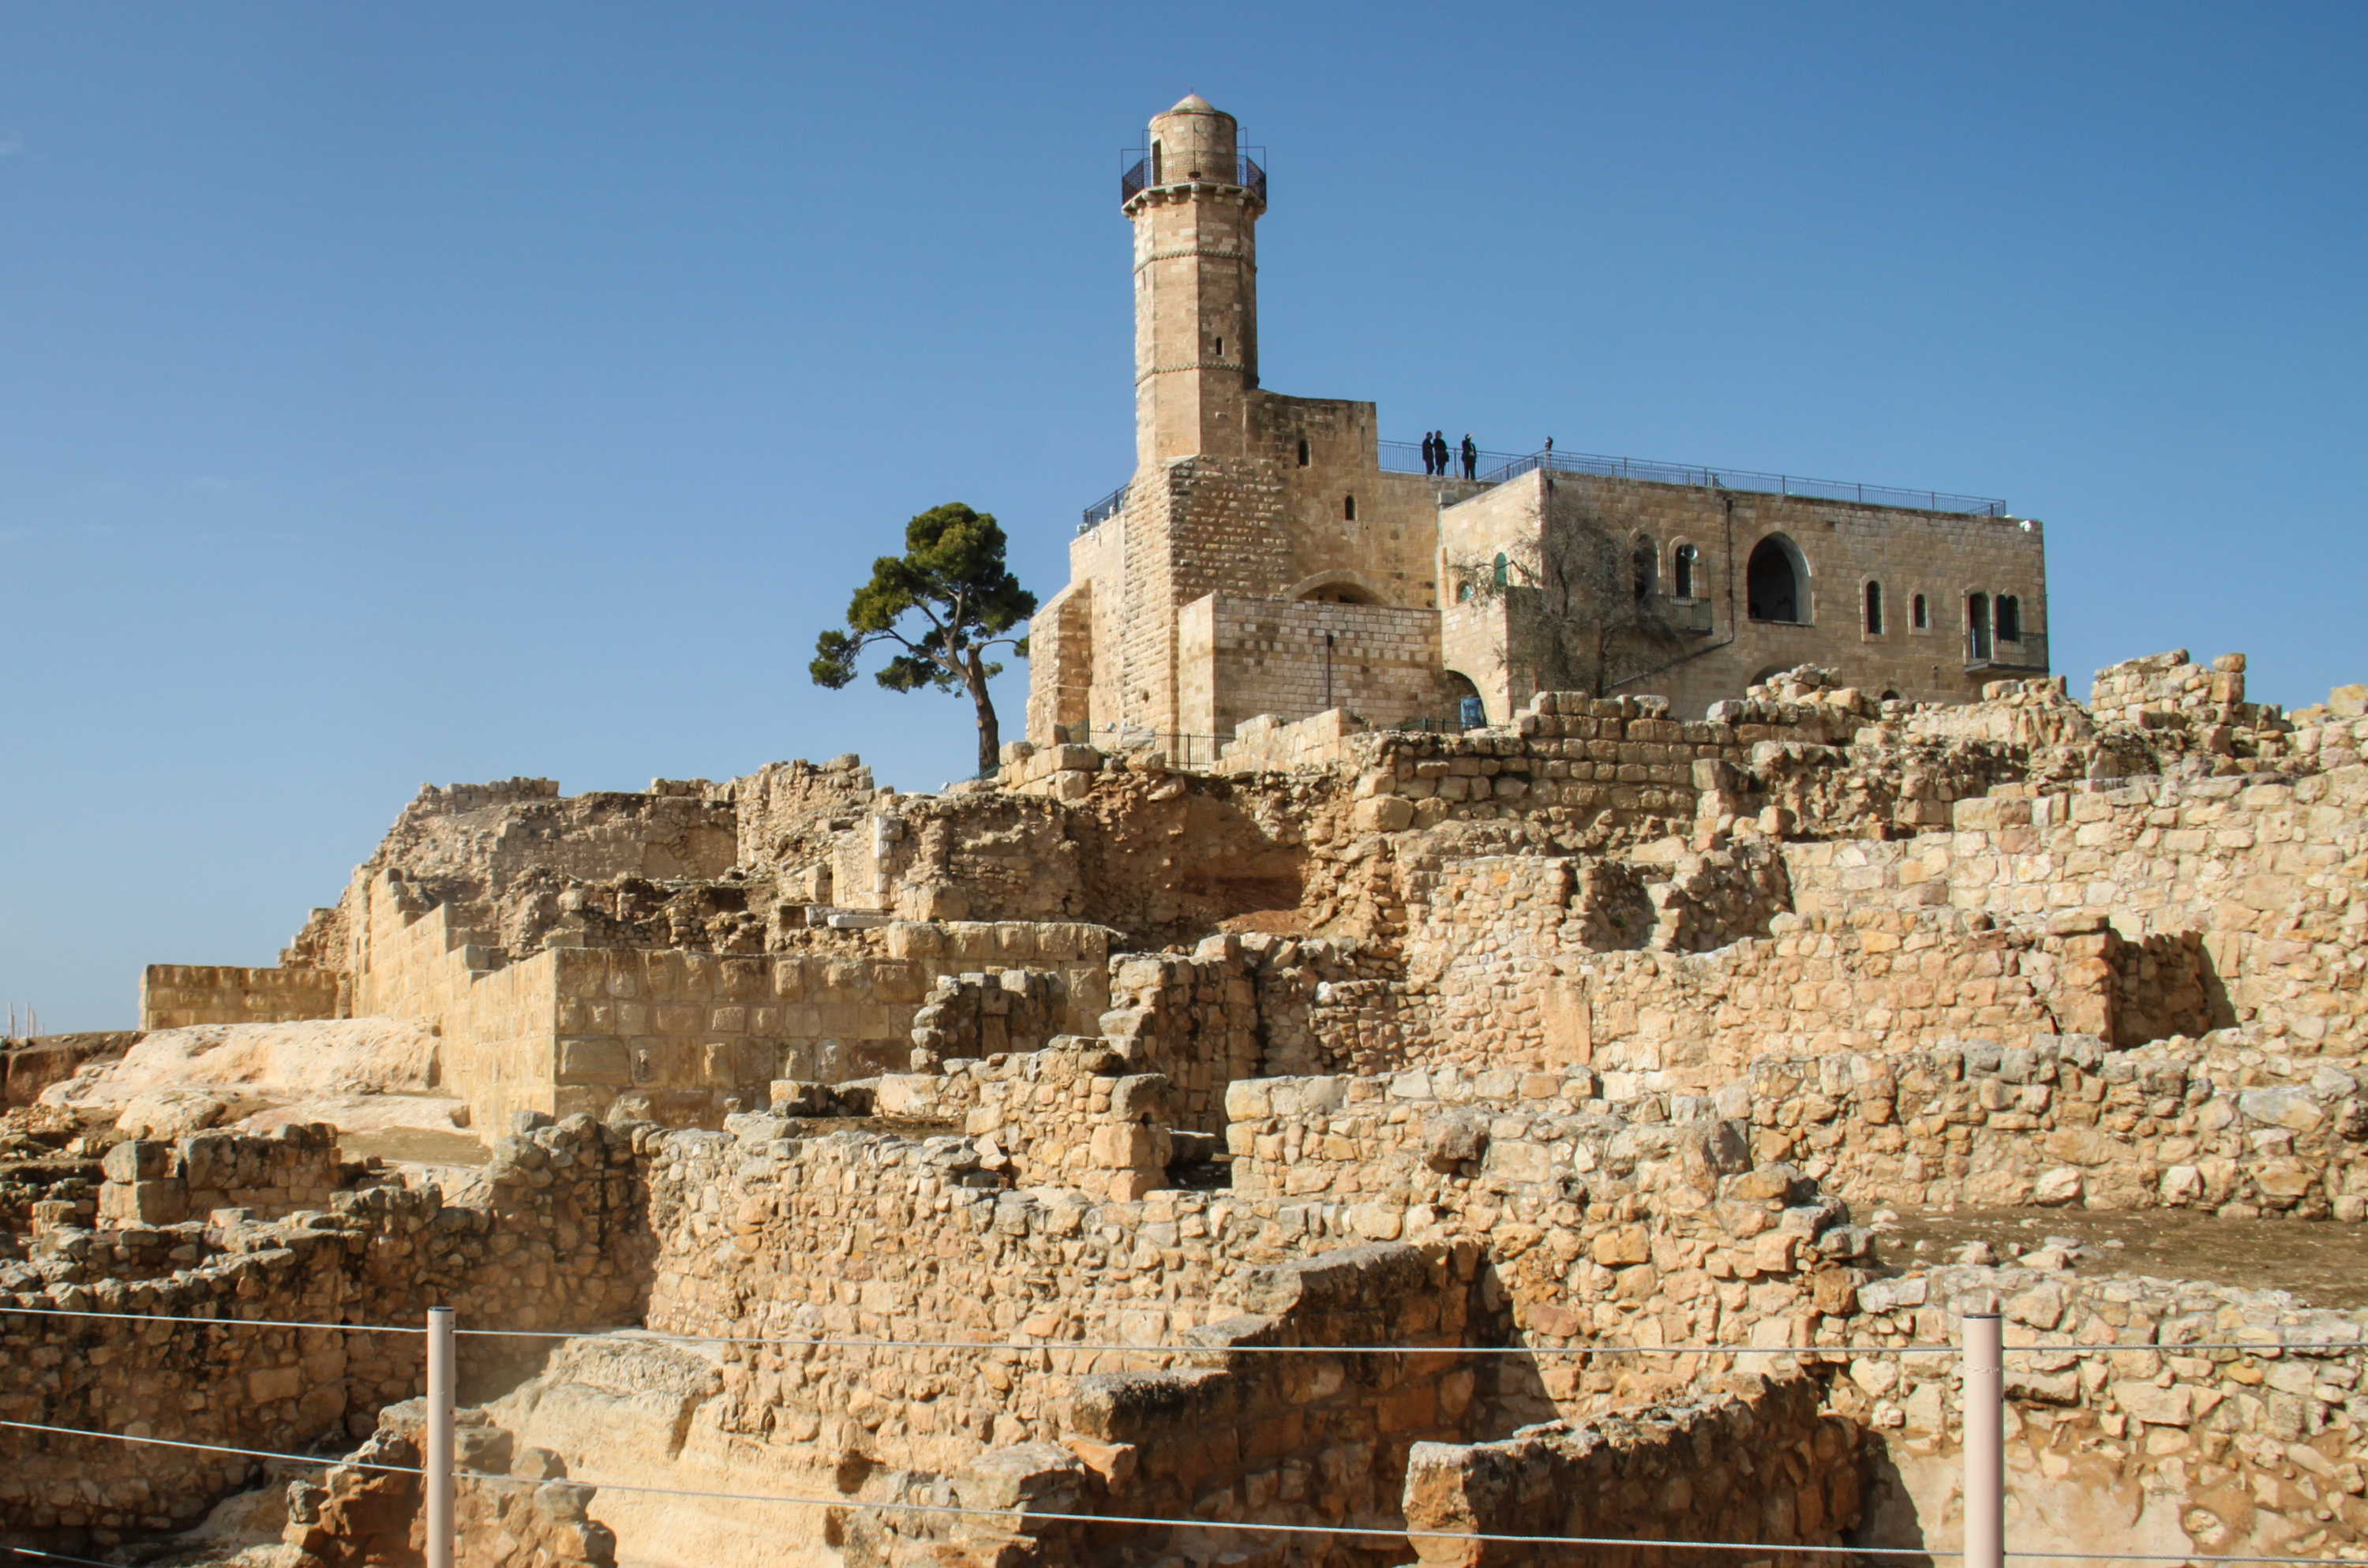 In West Bank, Israeli And Palestinian Archaeologists Both Lay Claim To Heritage